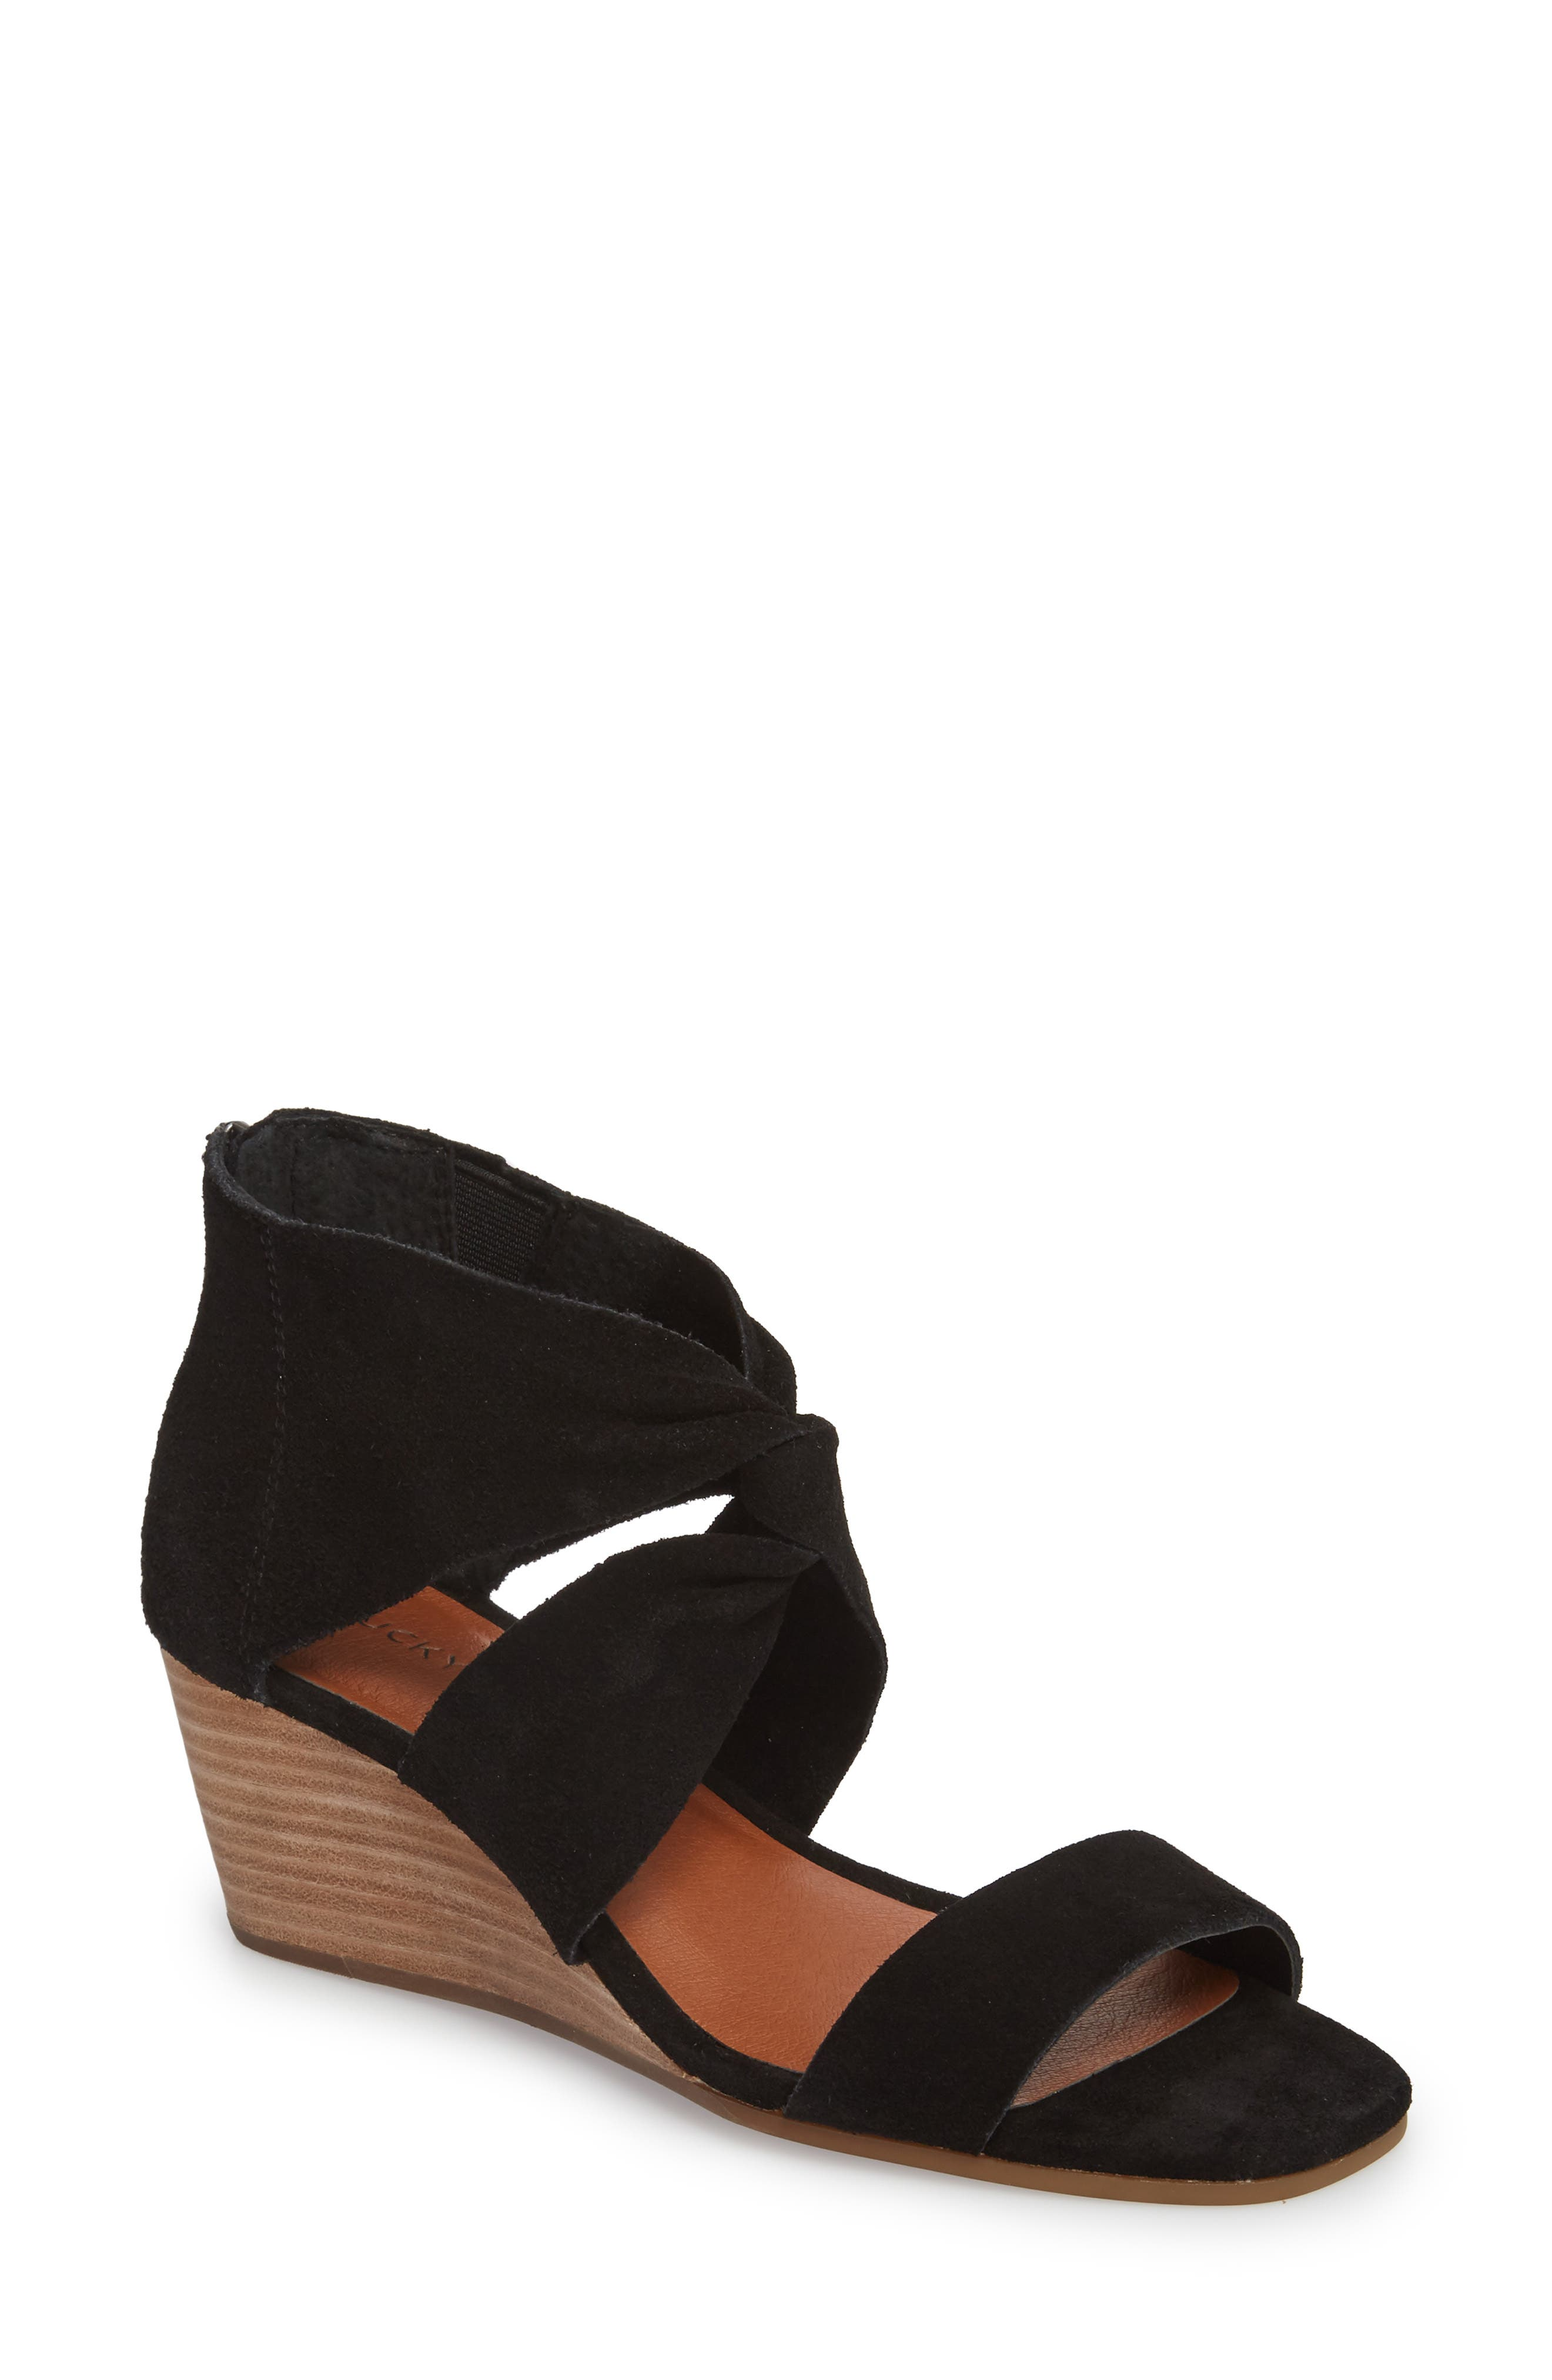 LUCKY BRAND Tammanee Wedge Sandal, Main, color, 001